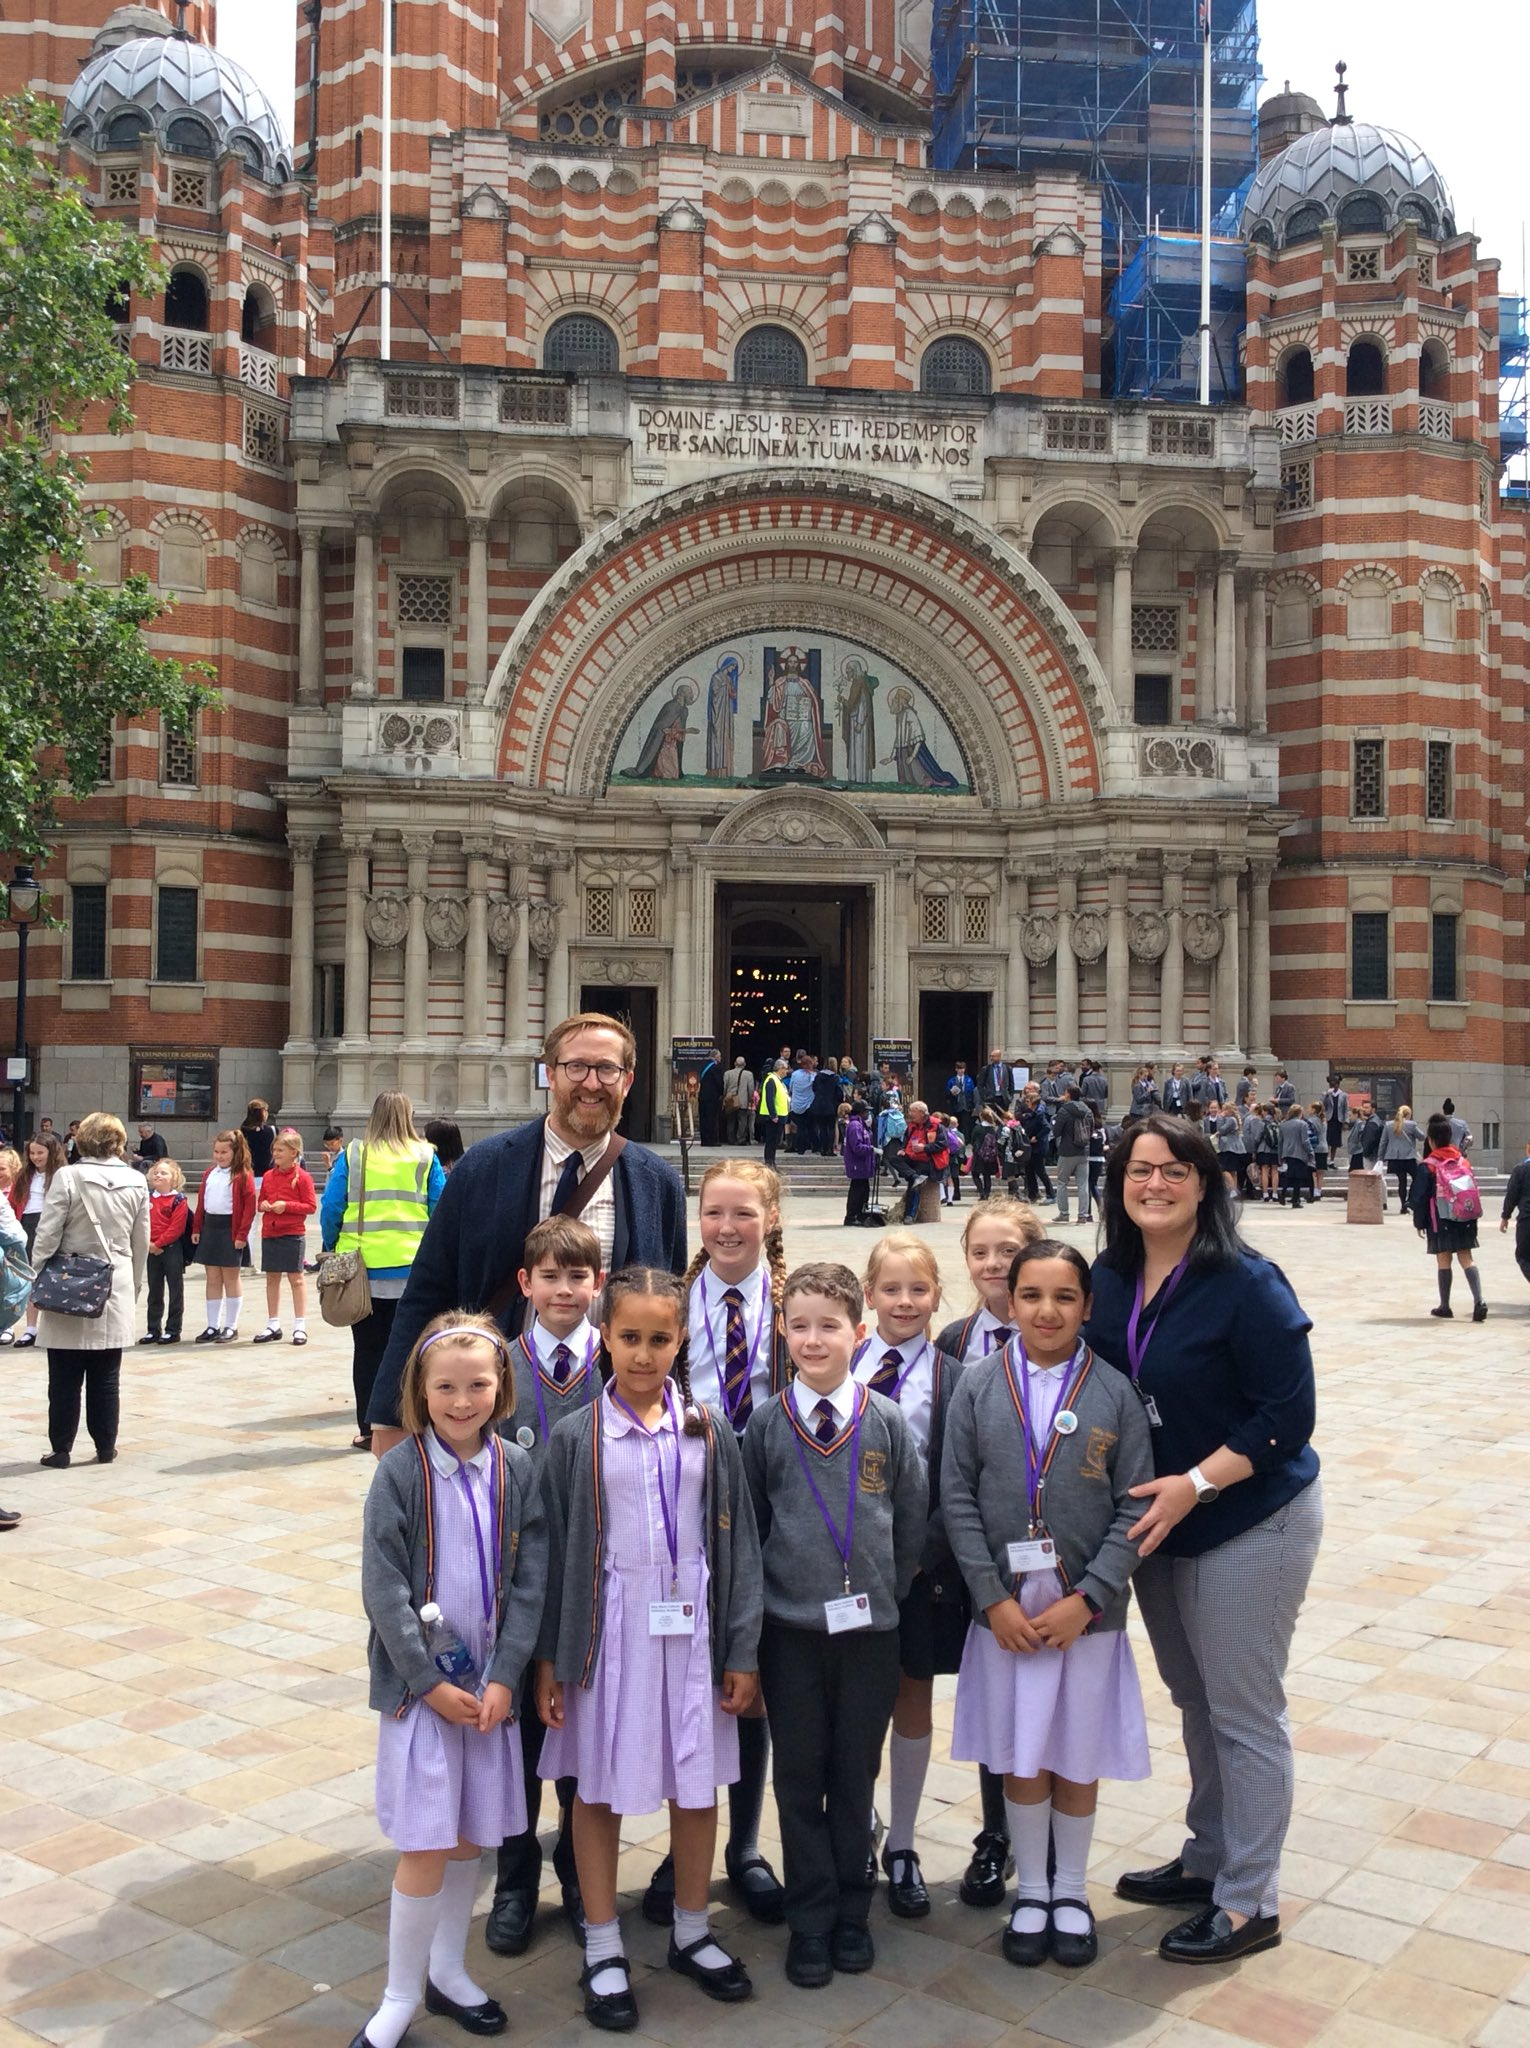 Photo: Holy Name Mini Vinnies outside Westminster Abbey in London